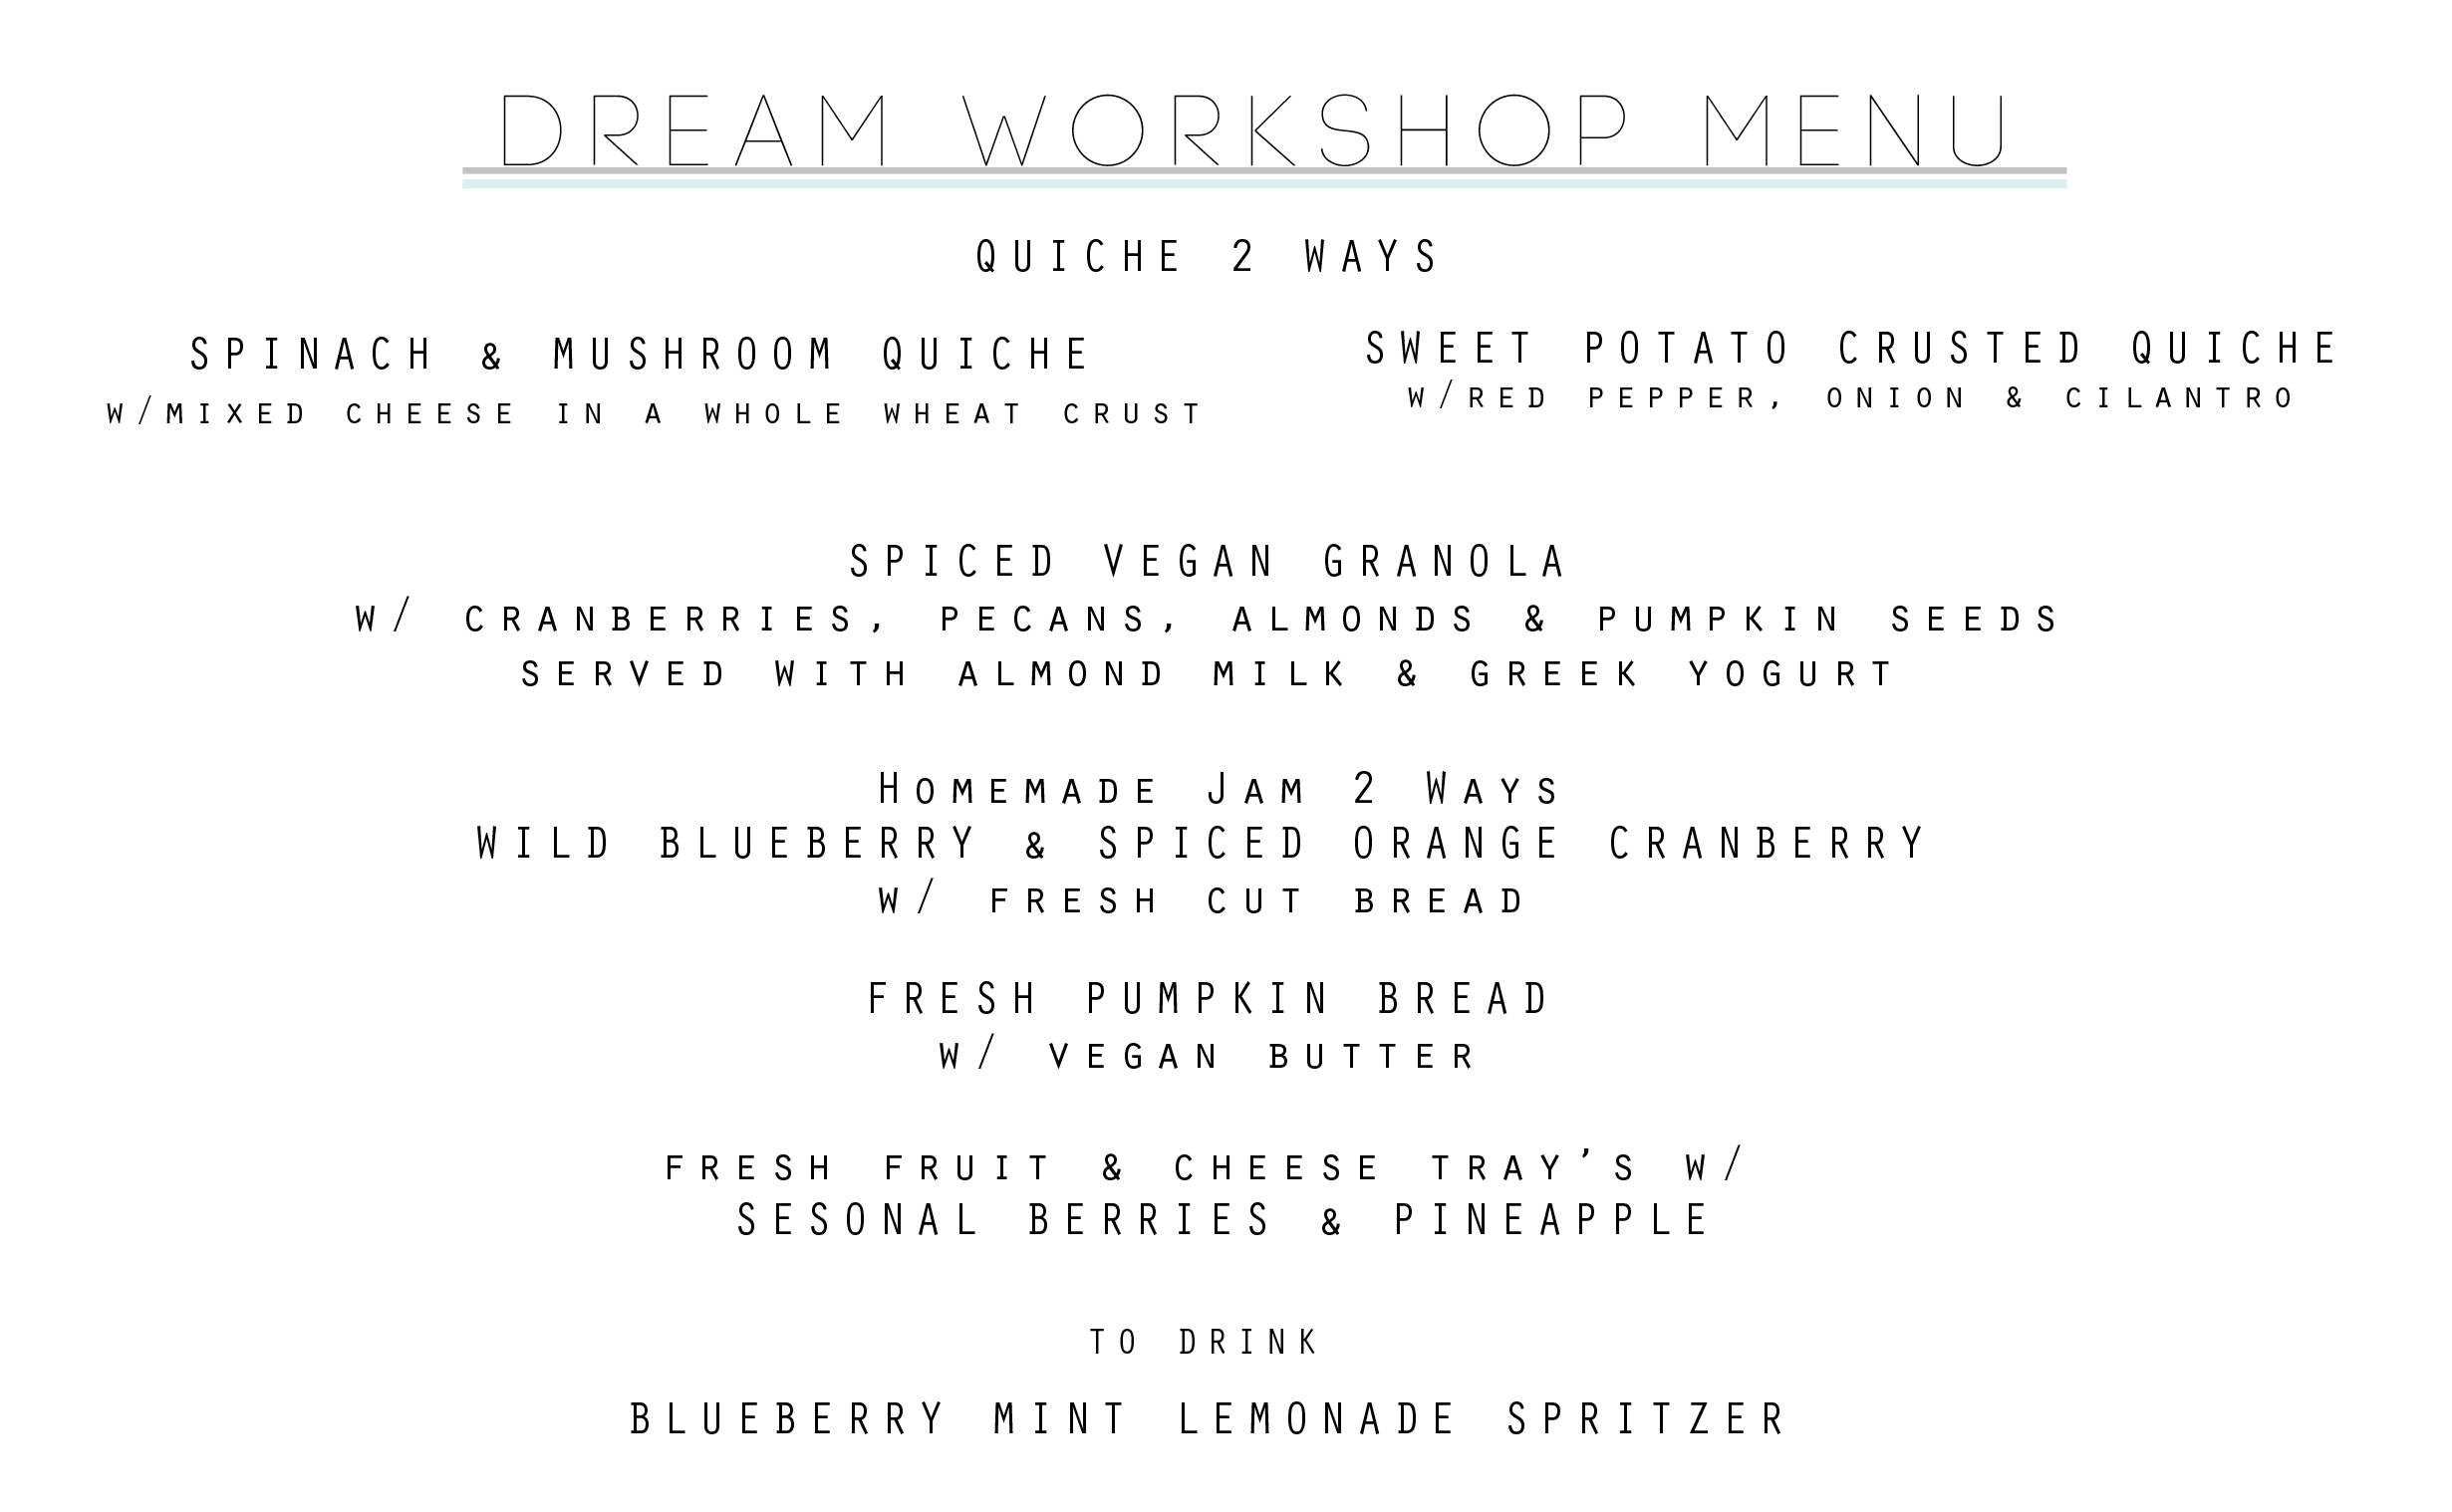 DREAM JOURNAL WORKSHOP MENU BY VALERIE NOELL